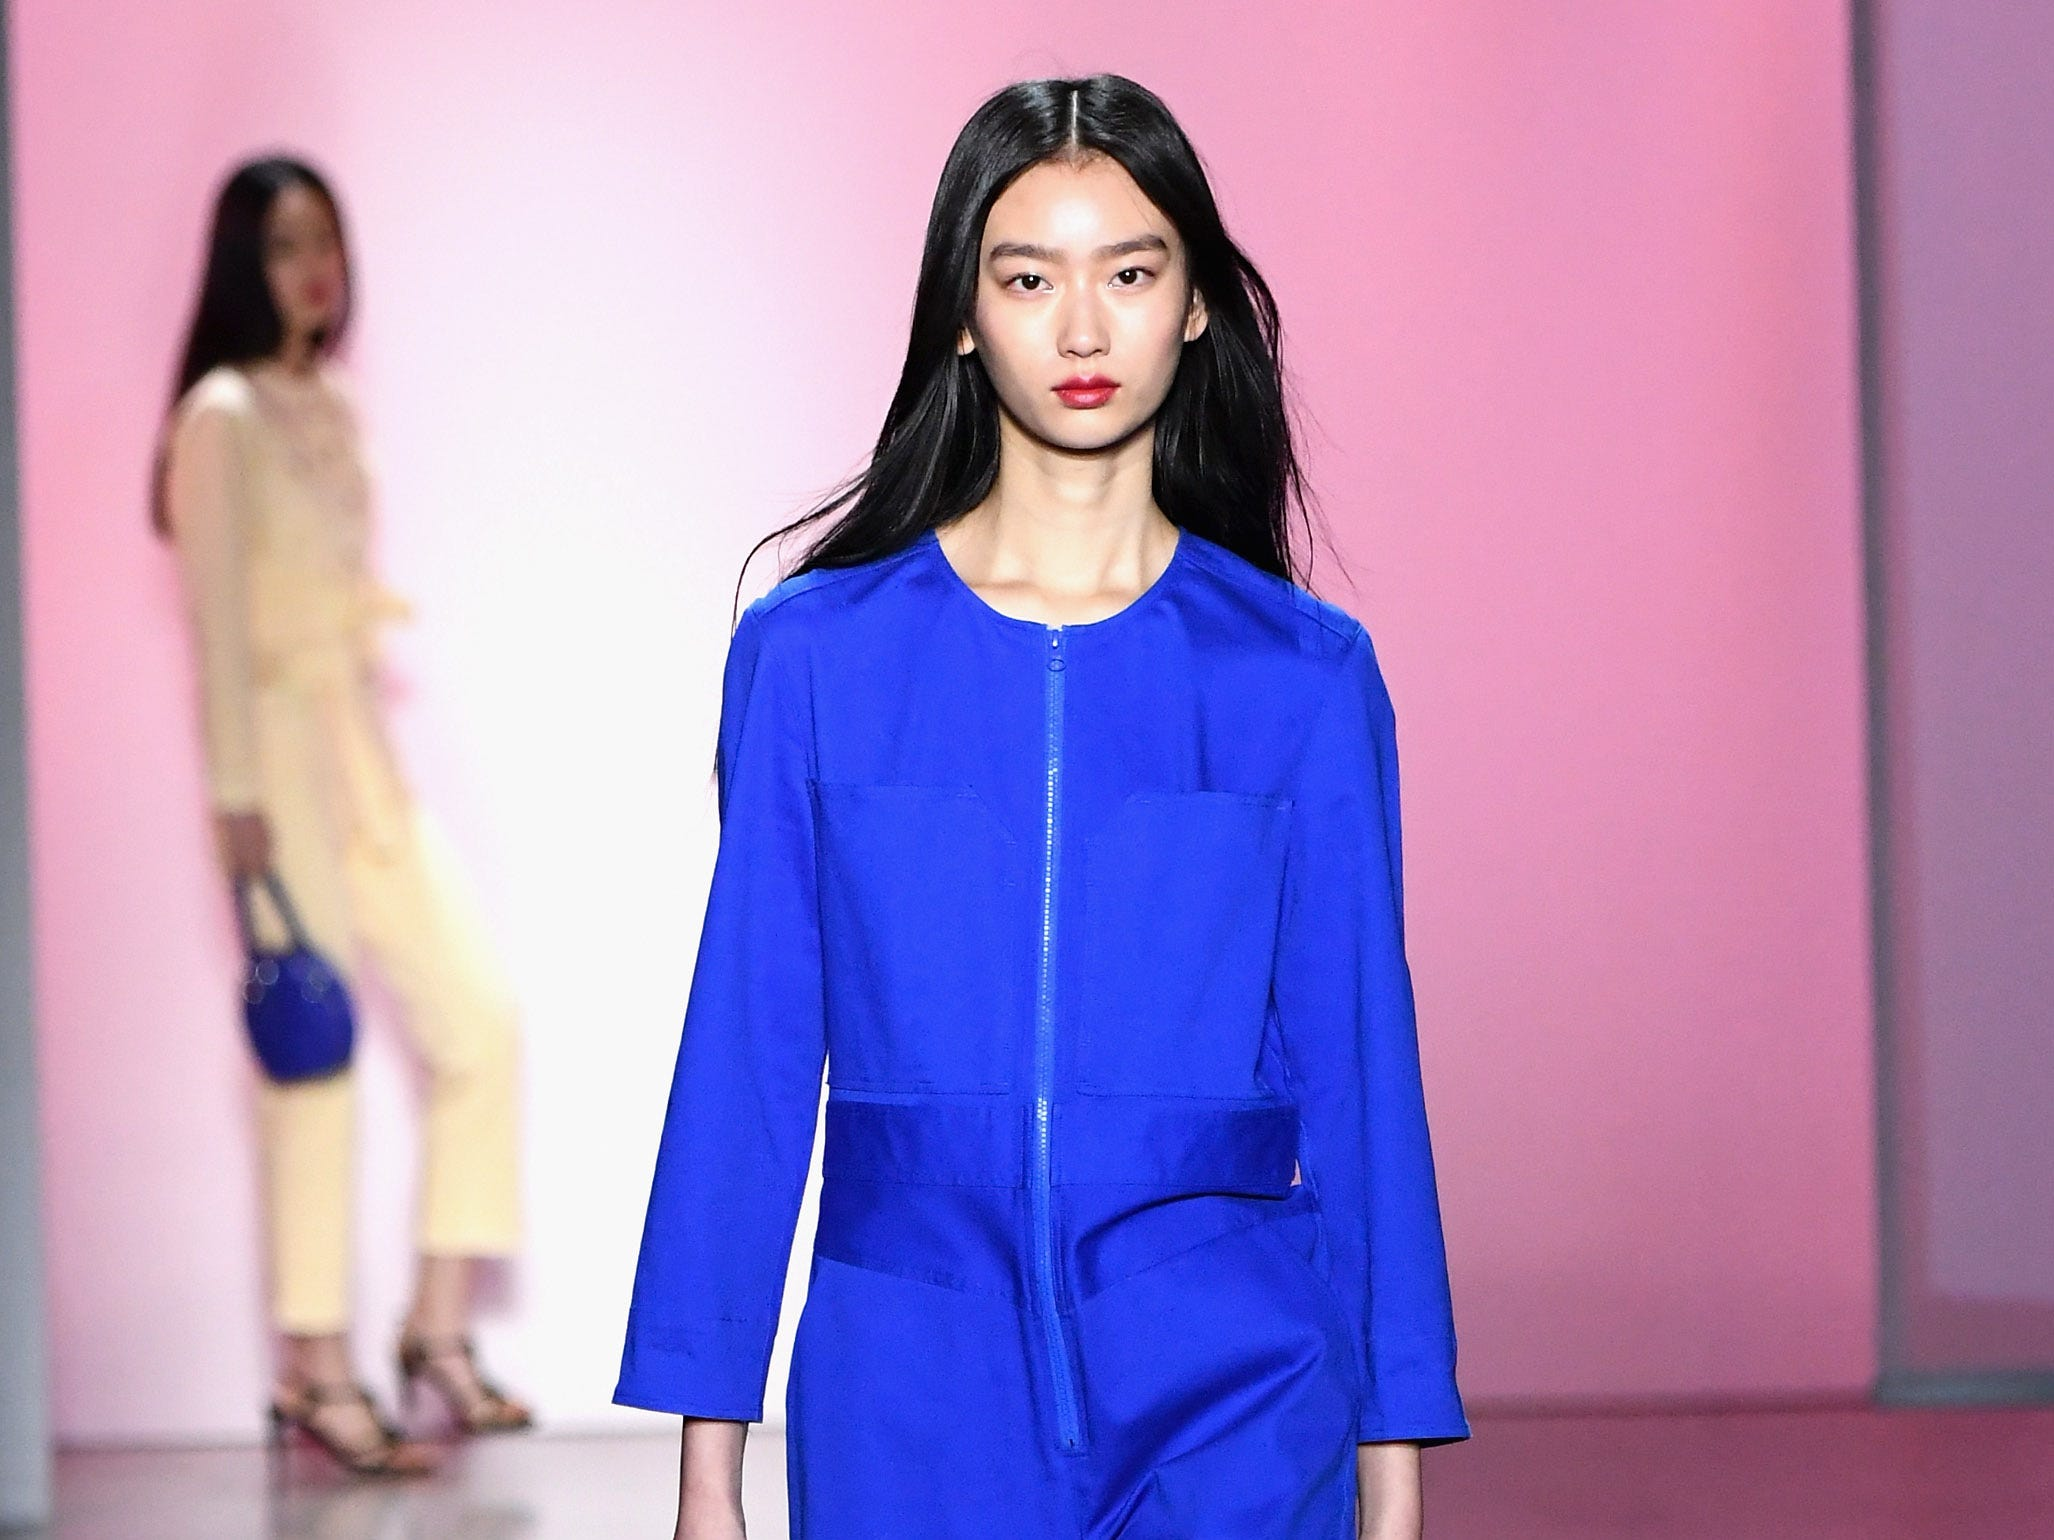 NEW YORK, NY - FEBRUARY 10:  A model walks the runway for the Rebecca Minkoff fashion show during New York Fashion Week: The Shows at Gallery I at Spring Studios on February 10, 2019 in New York City.  (Photo by Mike Coppola/Getty Images for NYFW: The Shows) ORG XMIT: 775290847 ORIG FILE ID: 1097085550